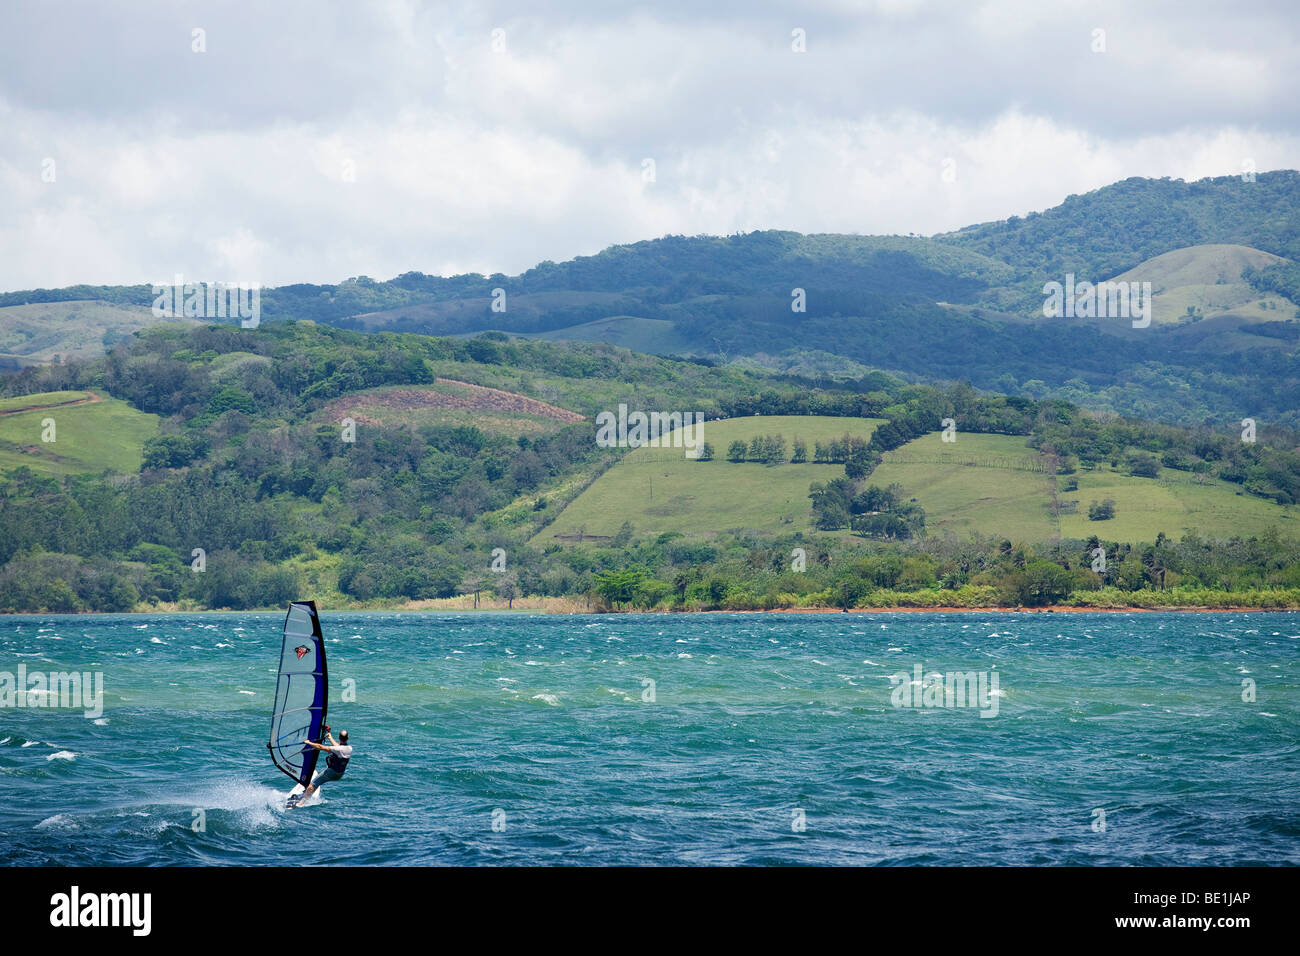 A wind surfer sails across Lake Arenal In Costa Rica - Stock Image